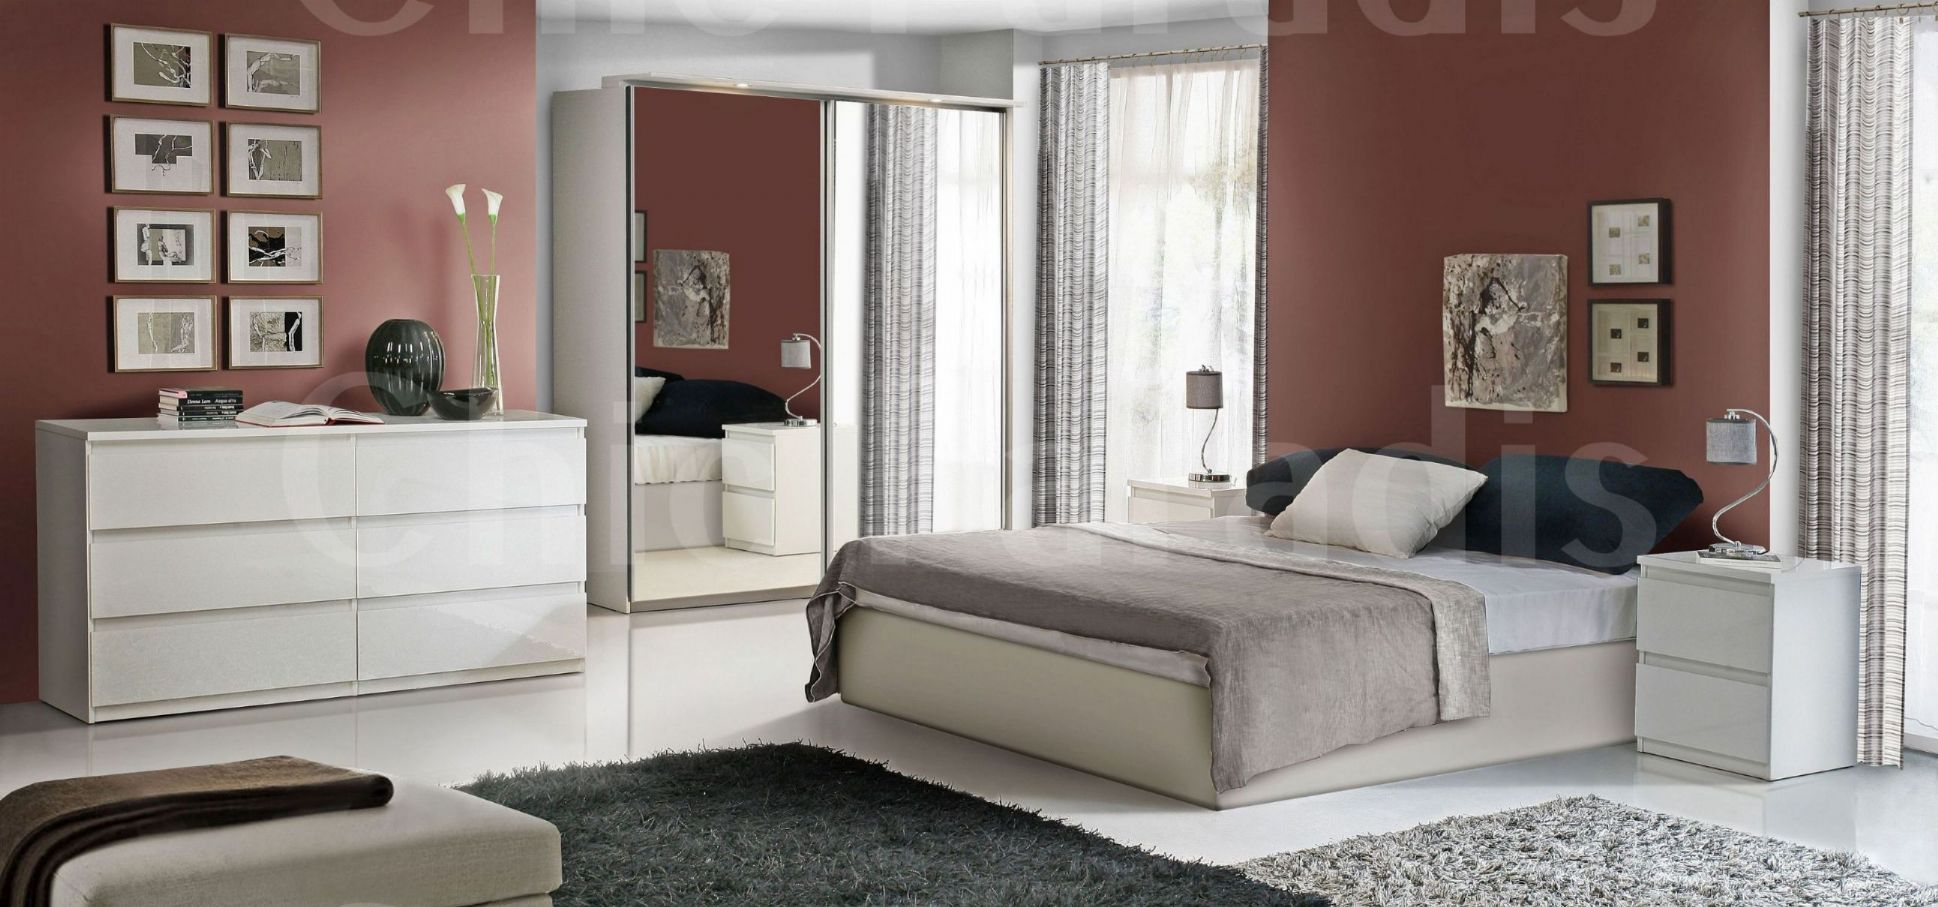 Luxury White High Gloss Bedroom Furniture Sets Uk Inspirations white high gloss bedroom furniture